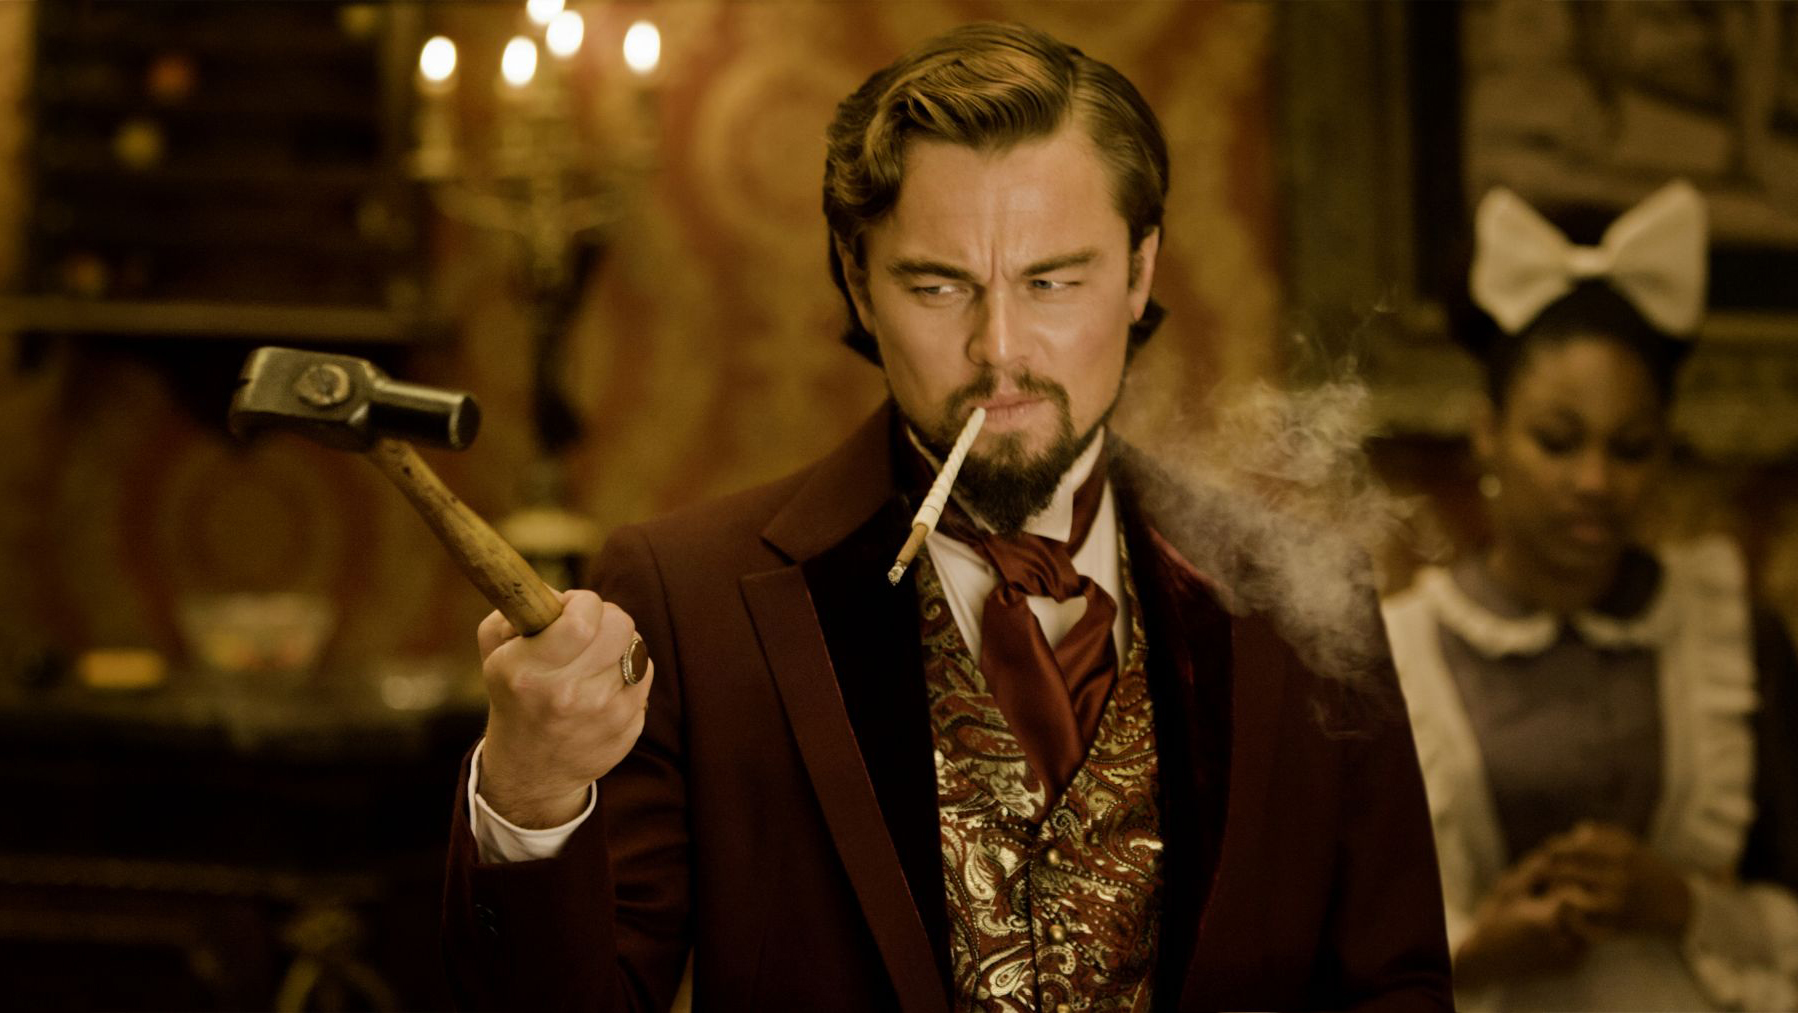 django unchained film review everywhere by tema large image